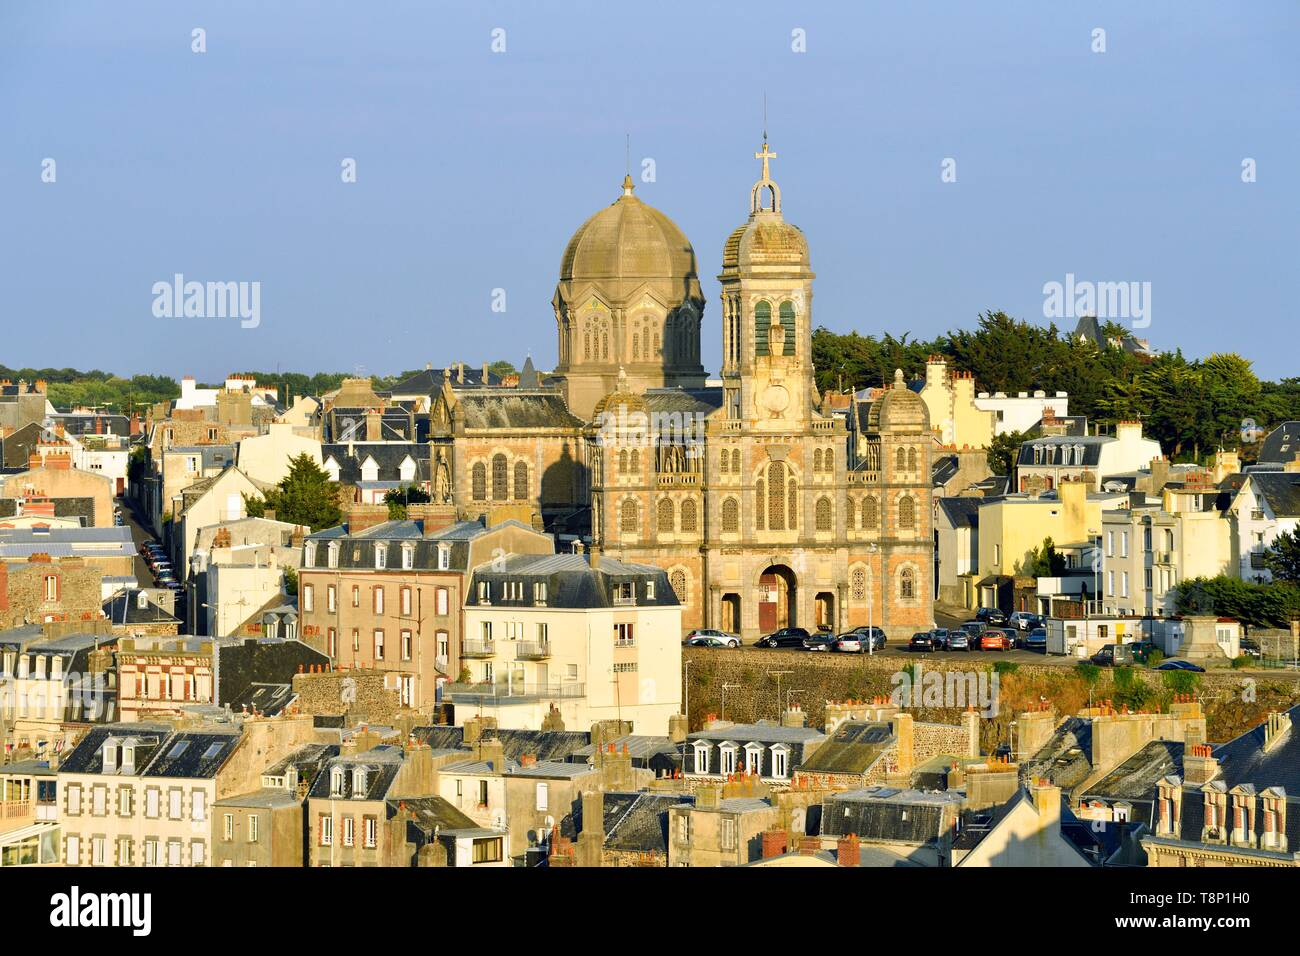 France, Manche, Cotentin, Granville, the Upper Town built on a rocky headland on the far eastern point of the Mont Saint Michel Bay, lower town and Saint Paul church - Stock Image